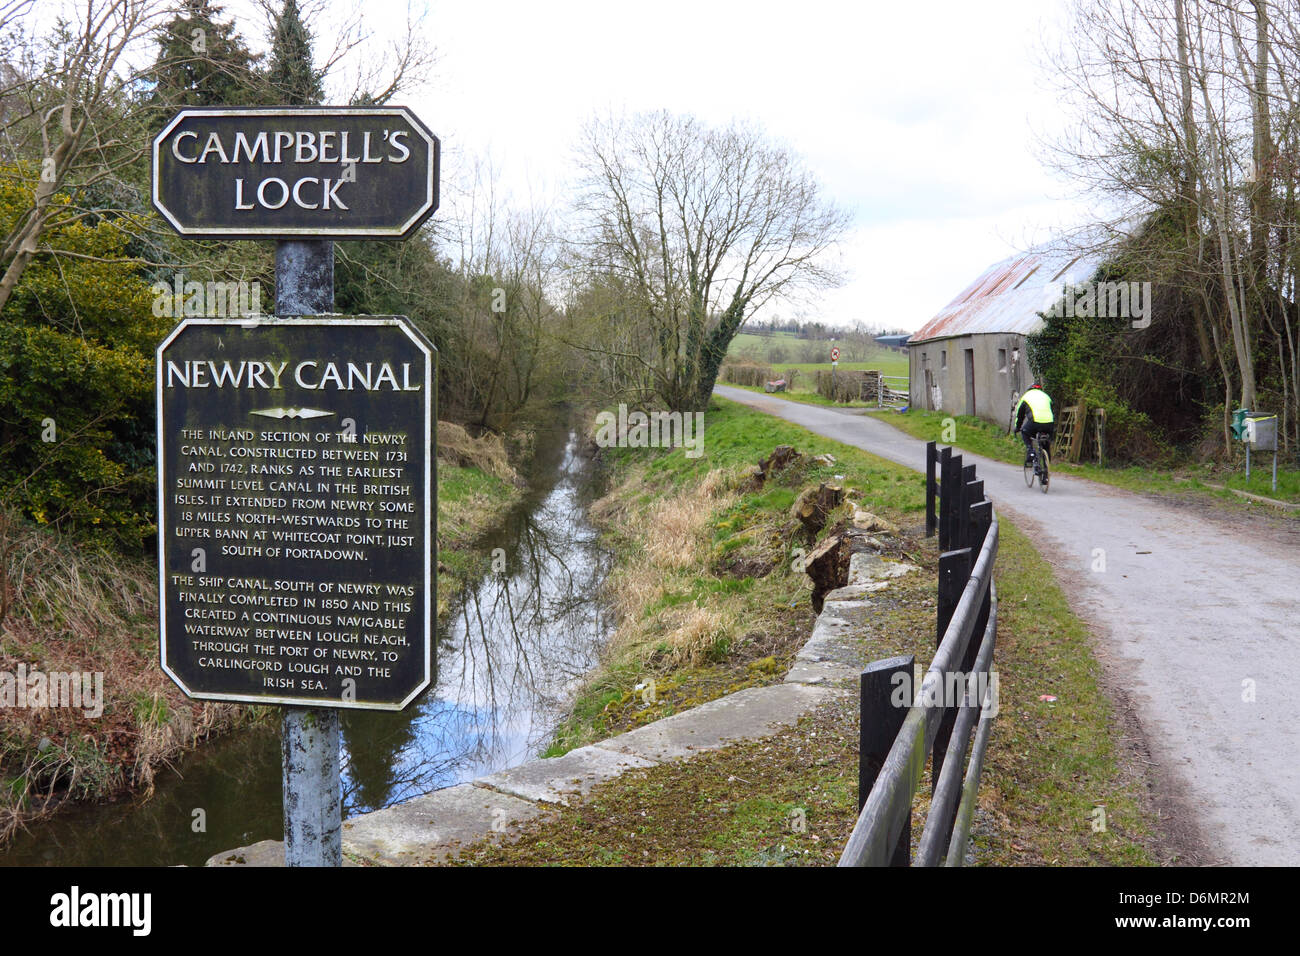 Campbell's Lock on the Newry Canal, near Scarva, Northern Ireland - Stock Image